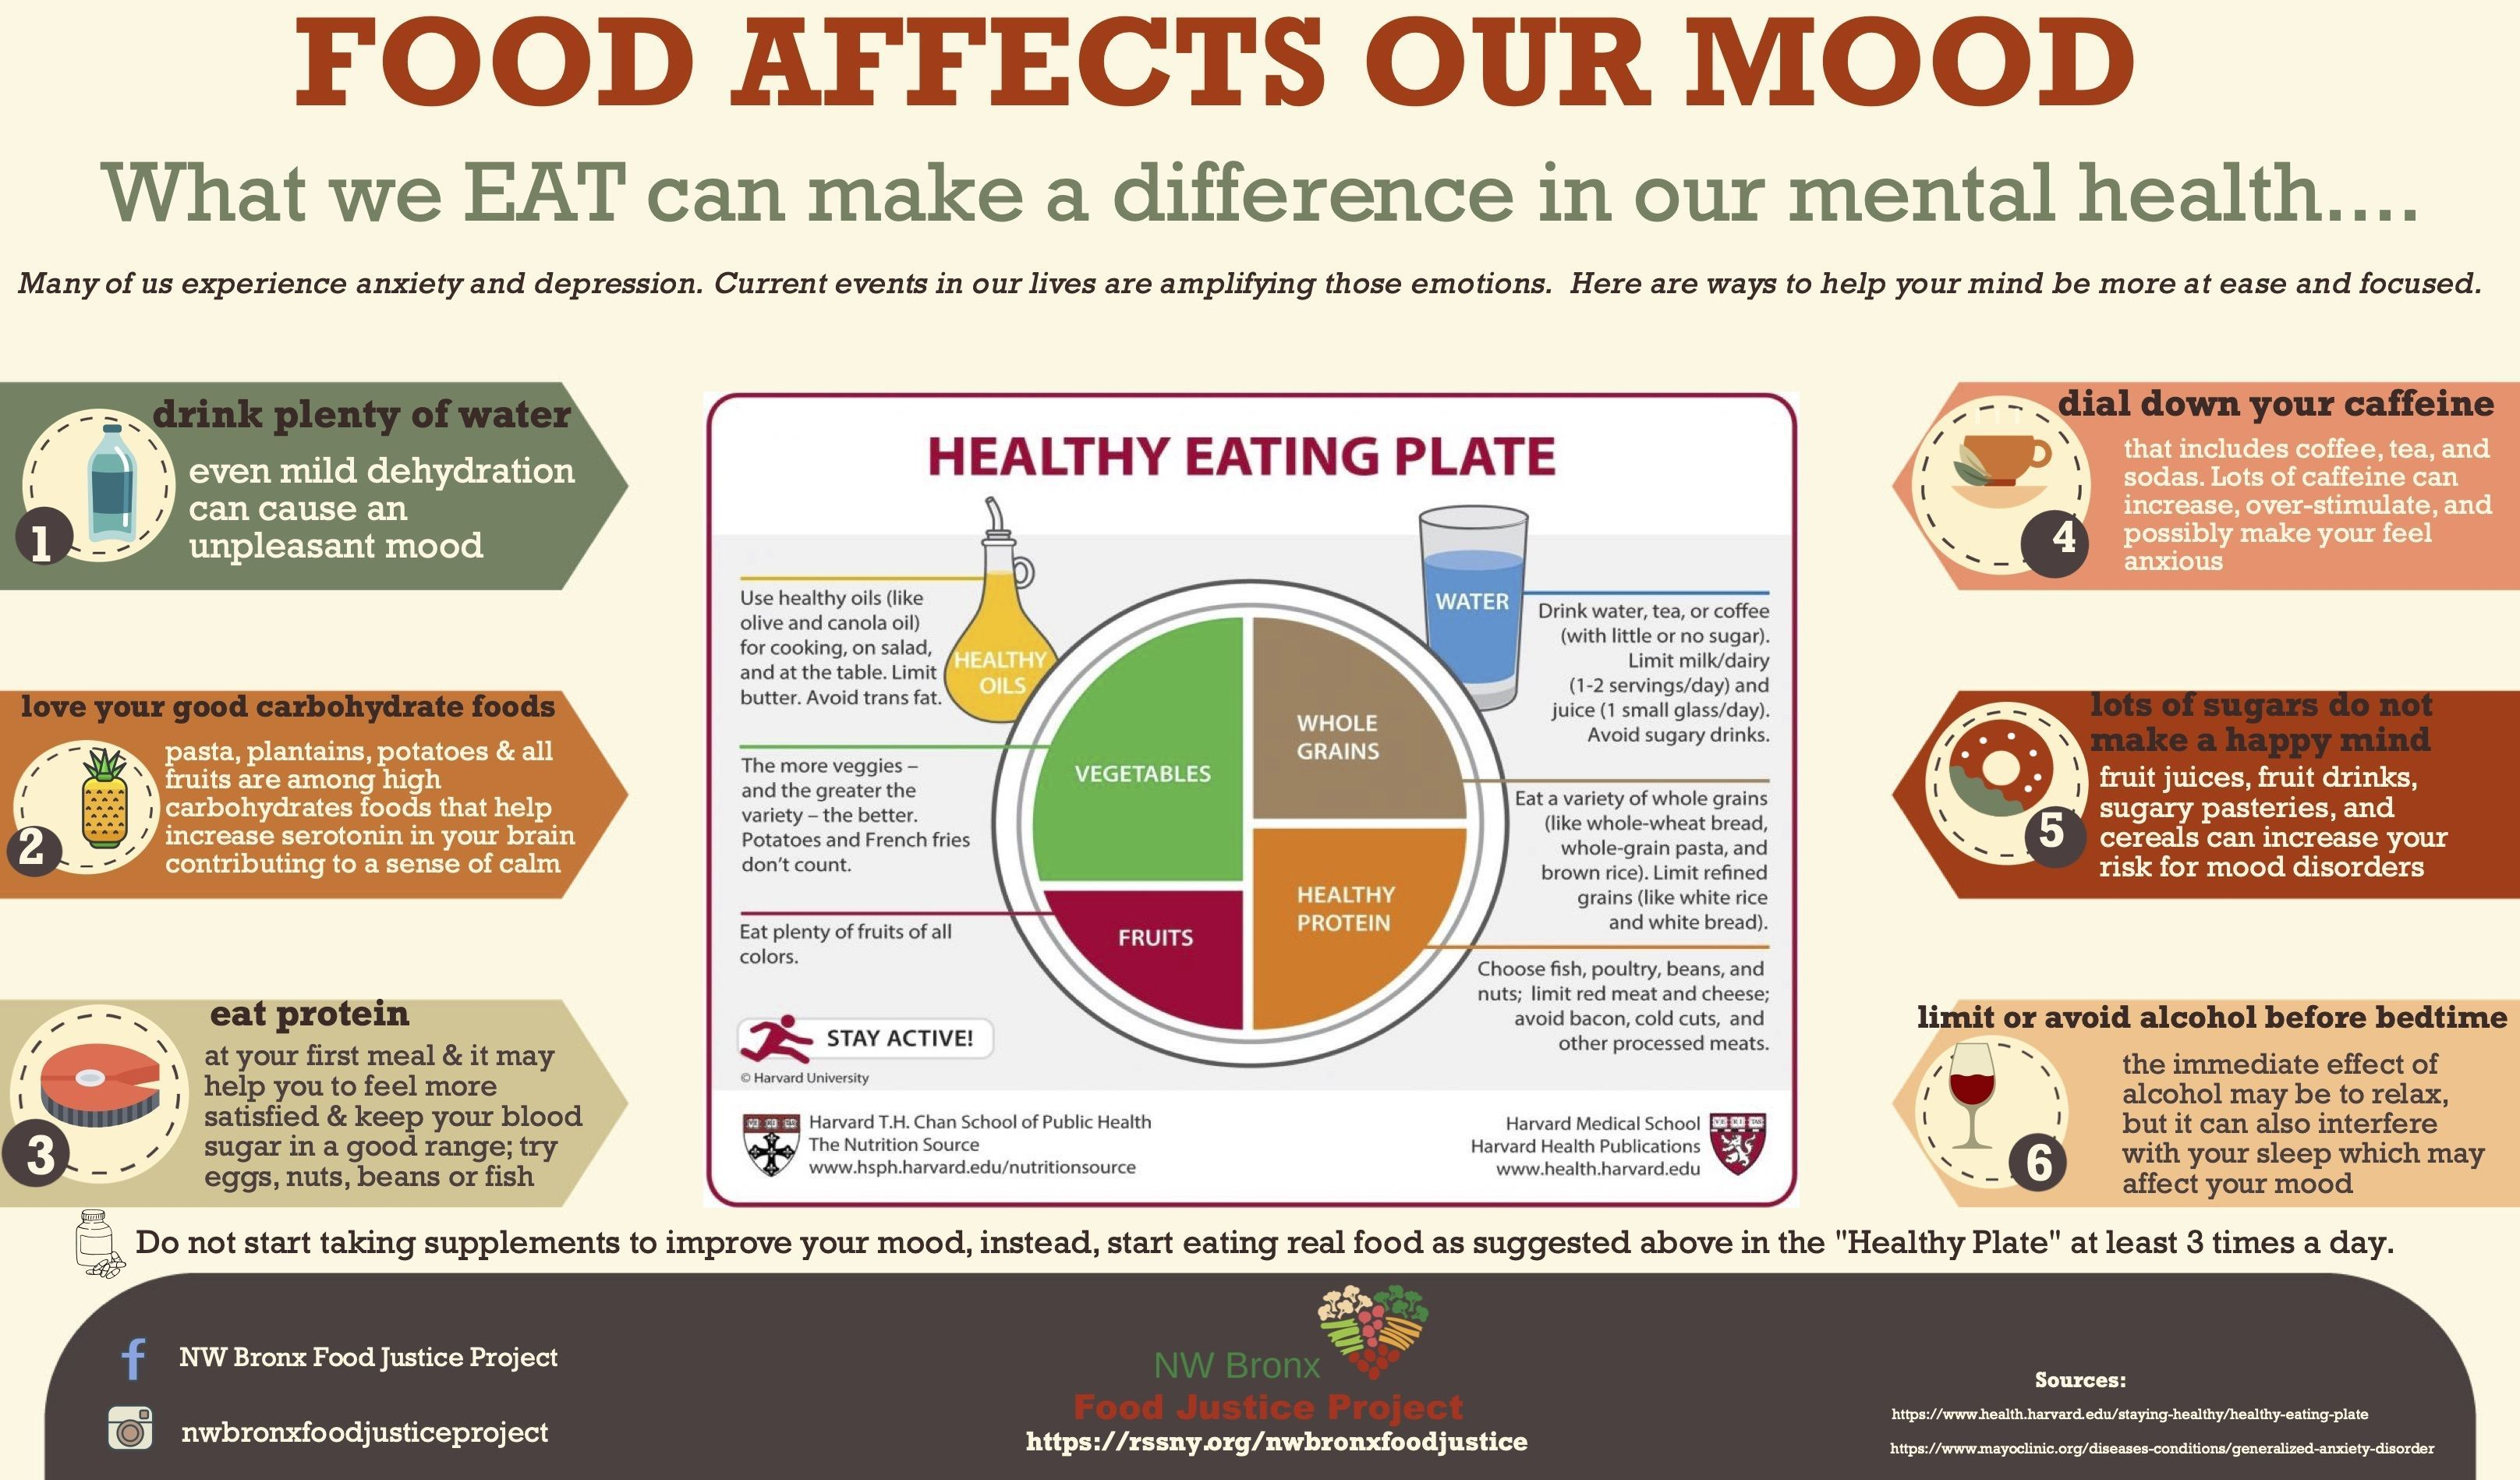 Food Affects our Mood